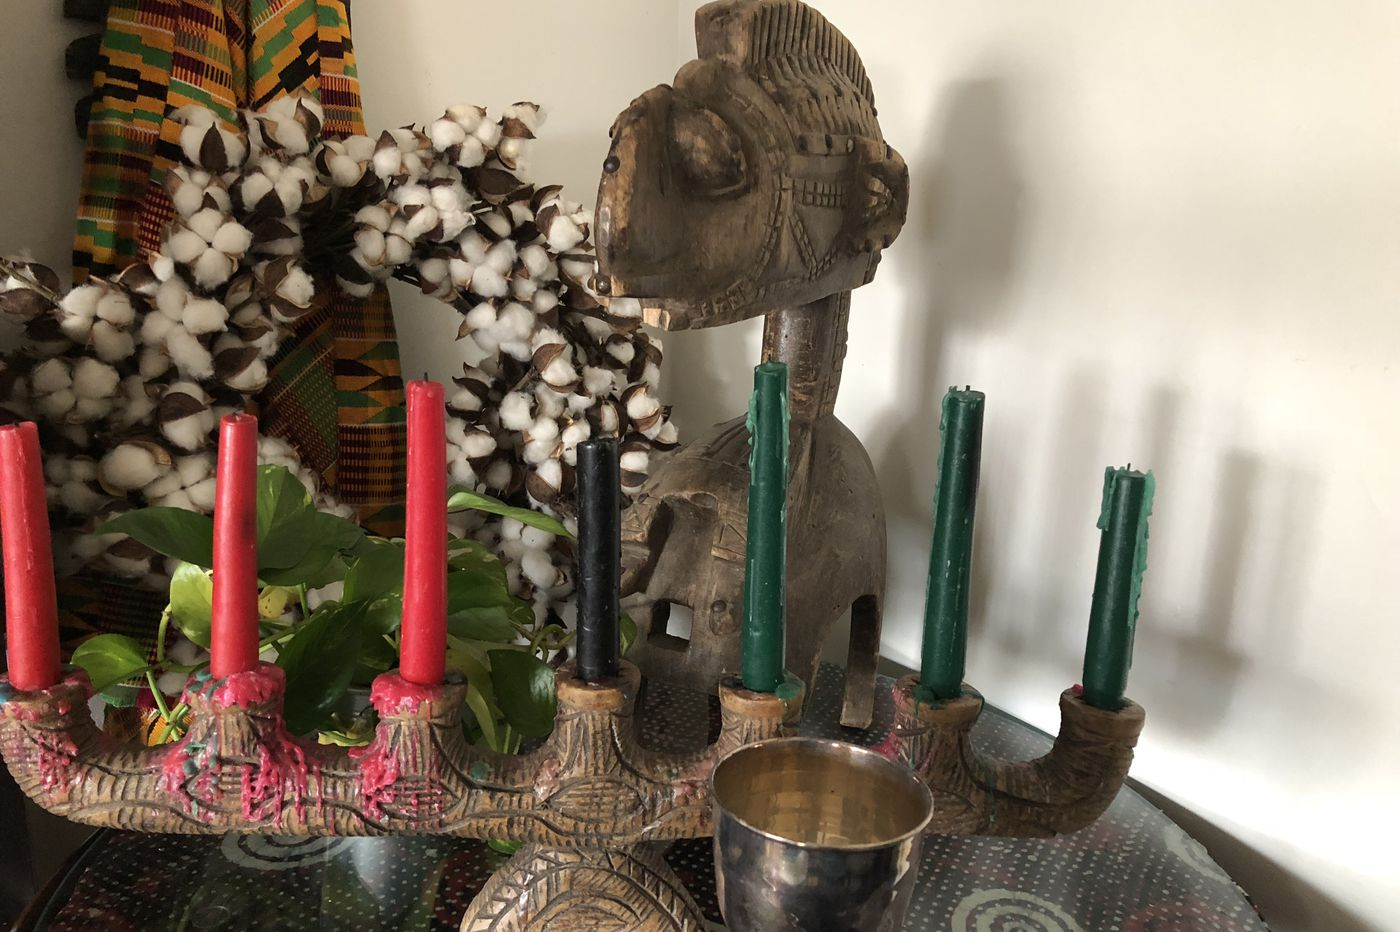 Why my family skips Christmas and celebrates Kwanzaa instead | Opinion